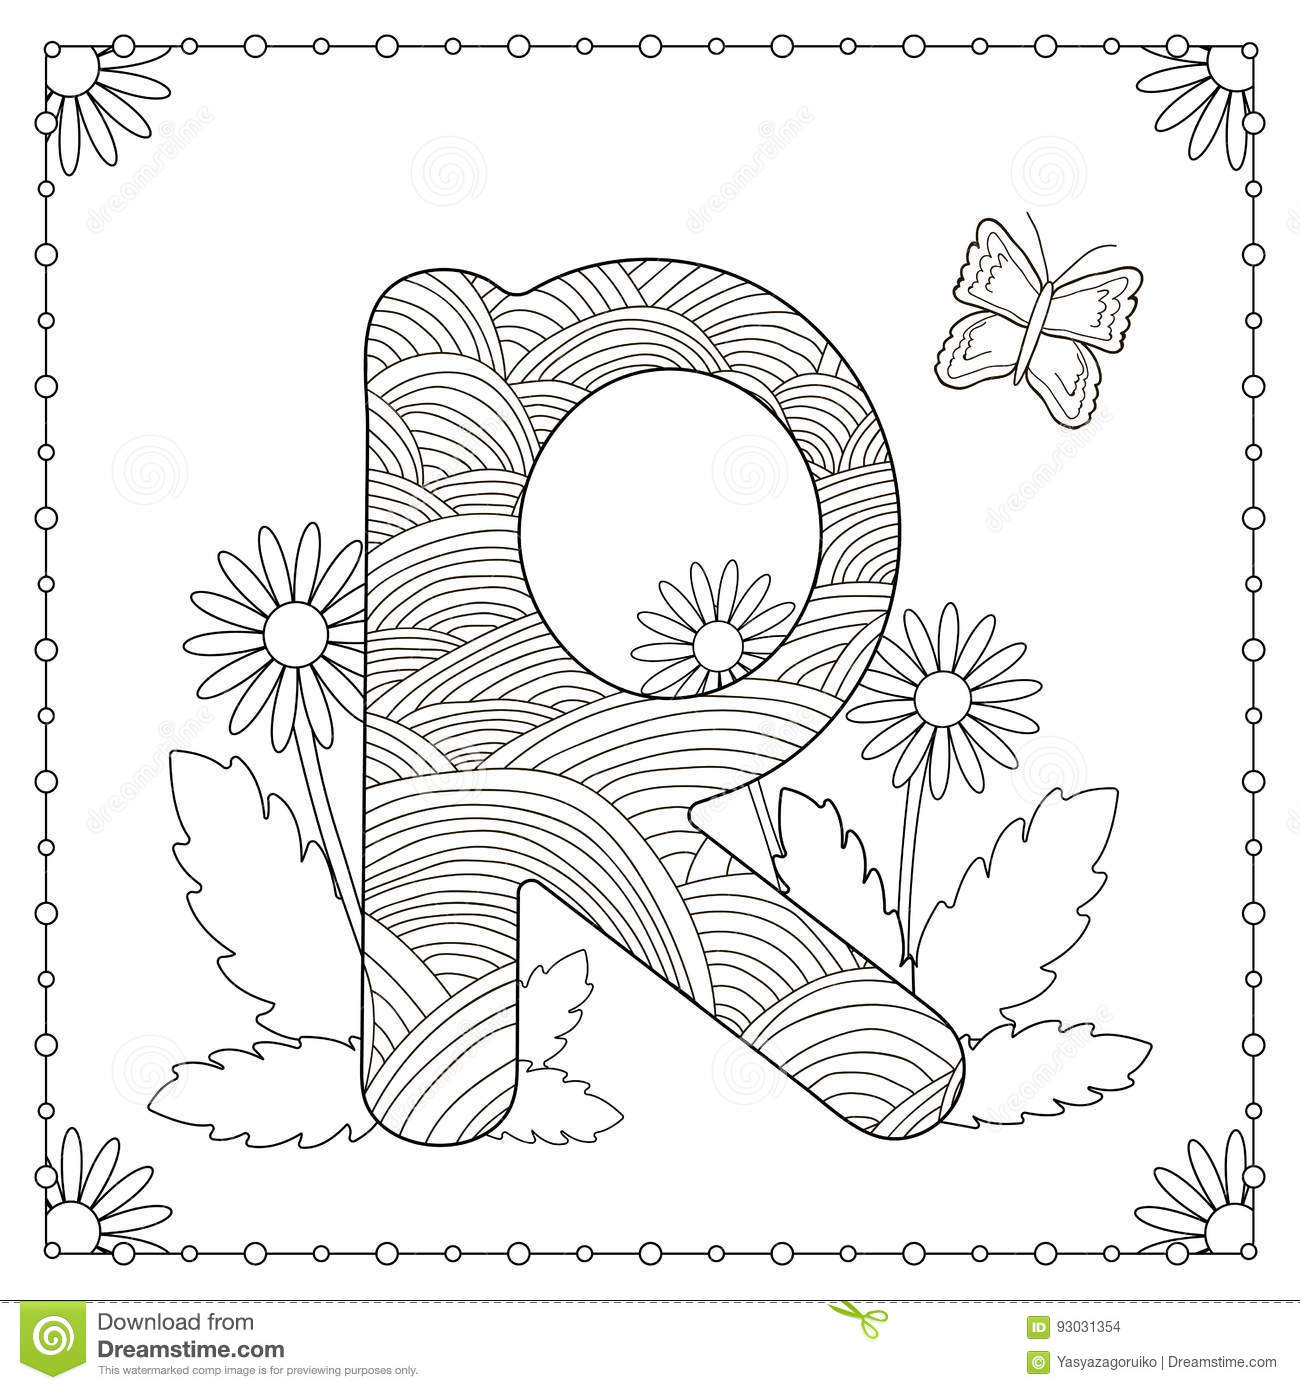 Alphabet Coloring Page Capital Letter R With Flowers Leaves And Butterfly Vector Illustration